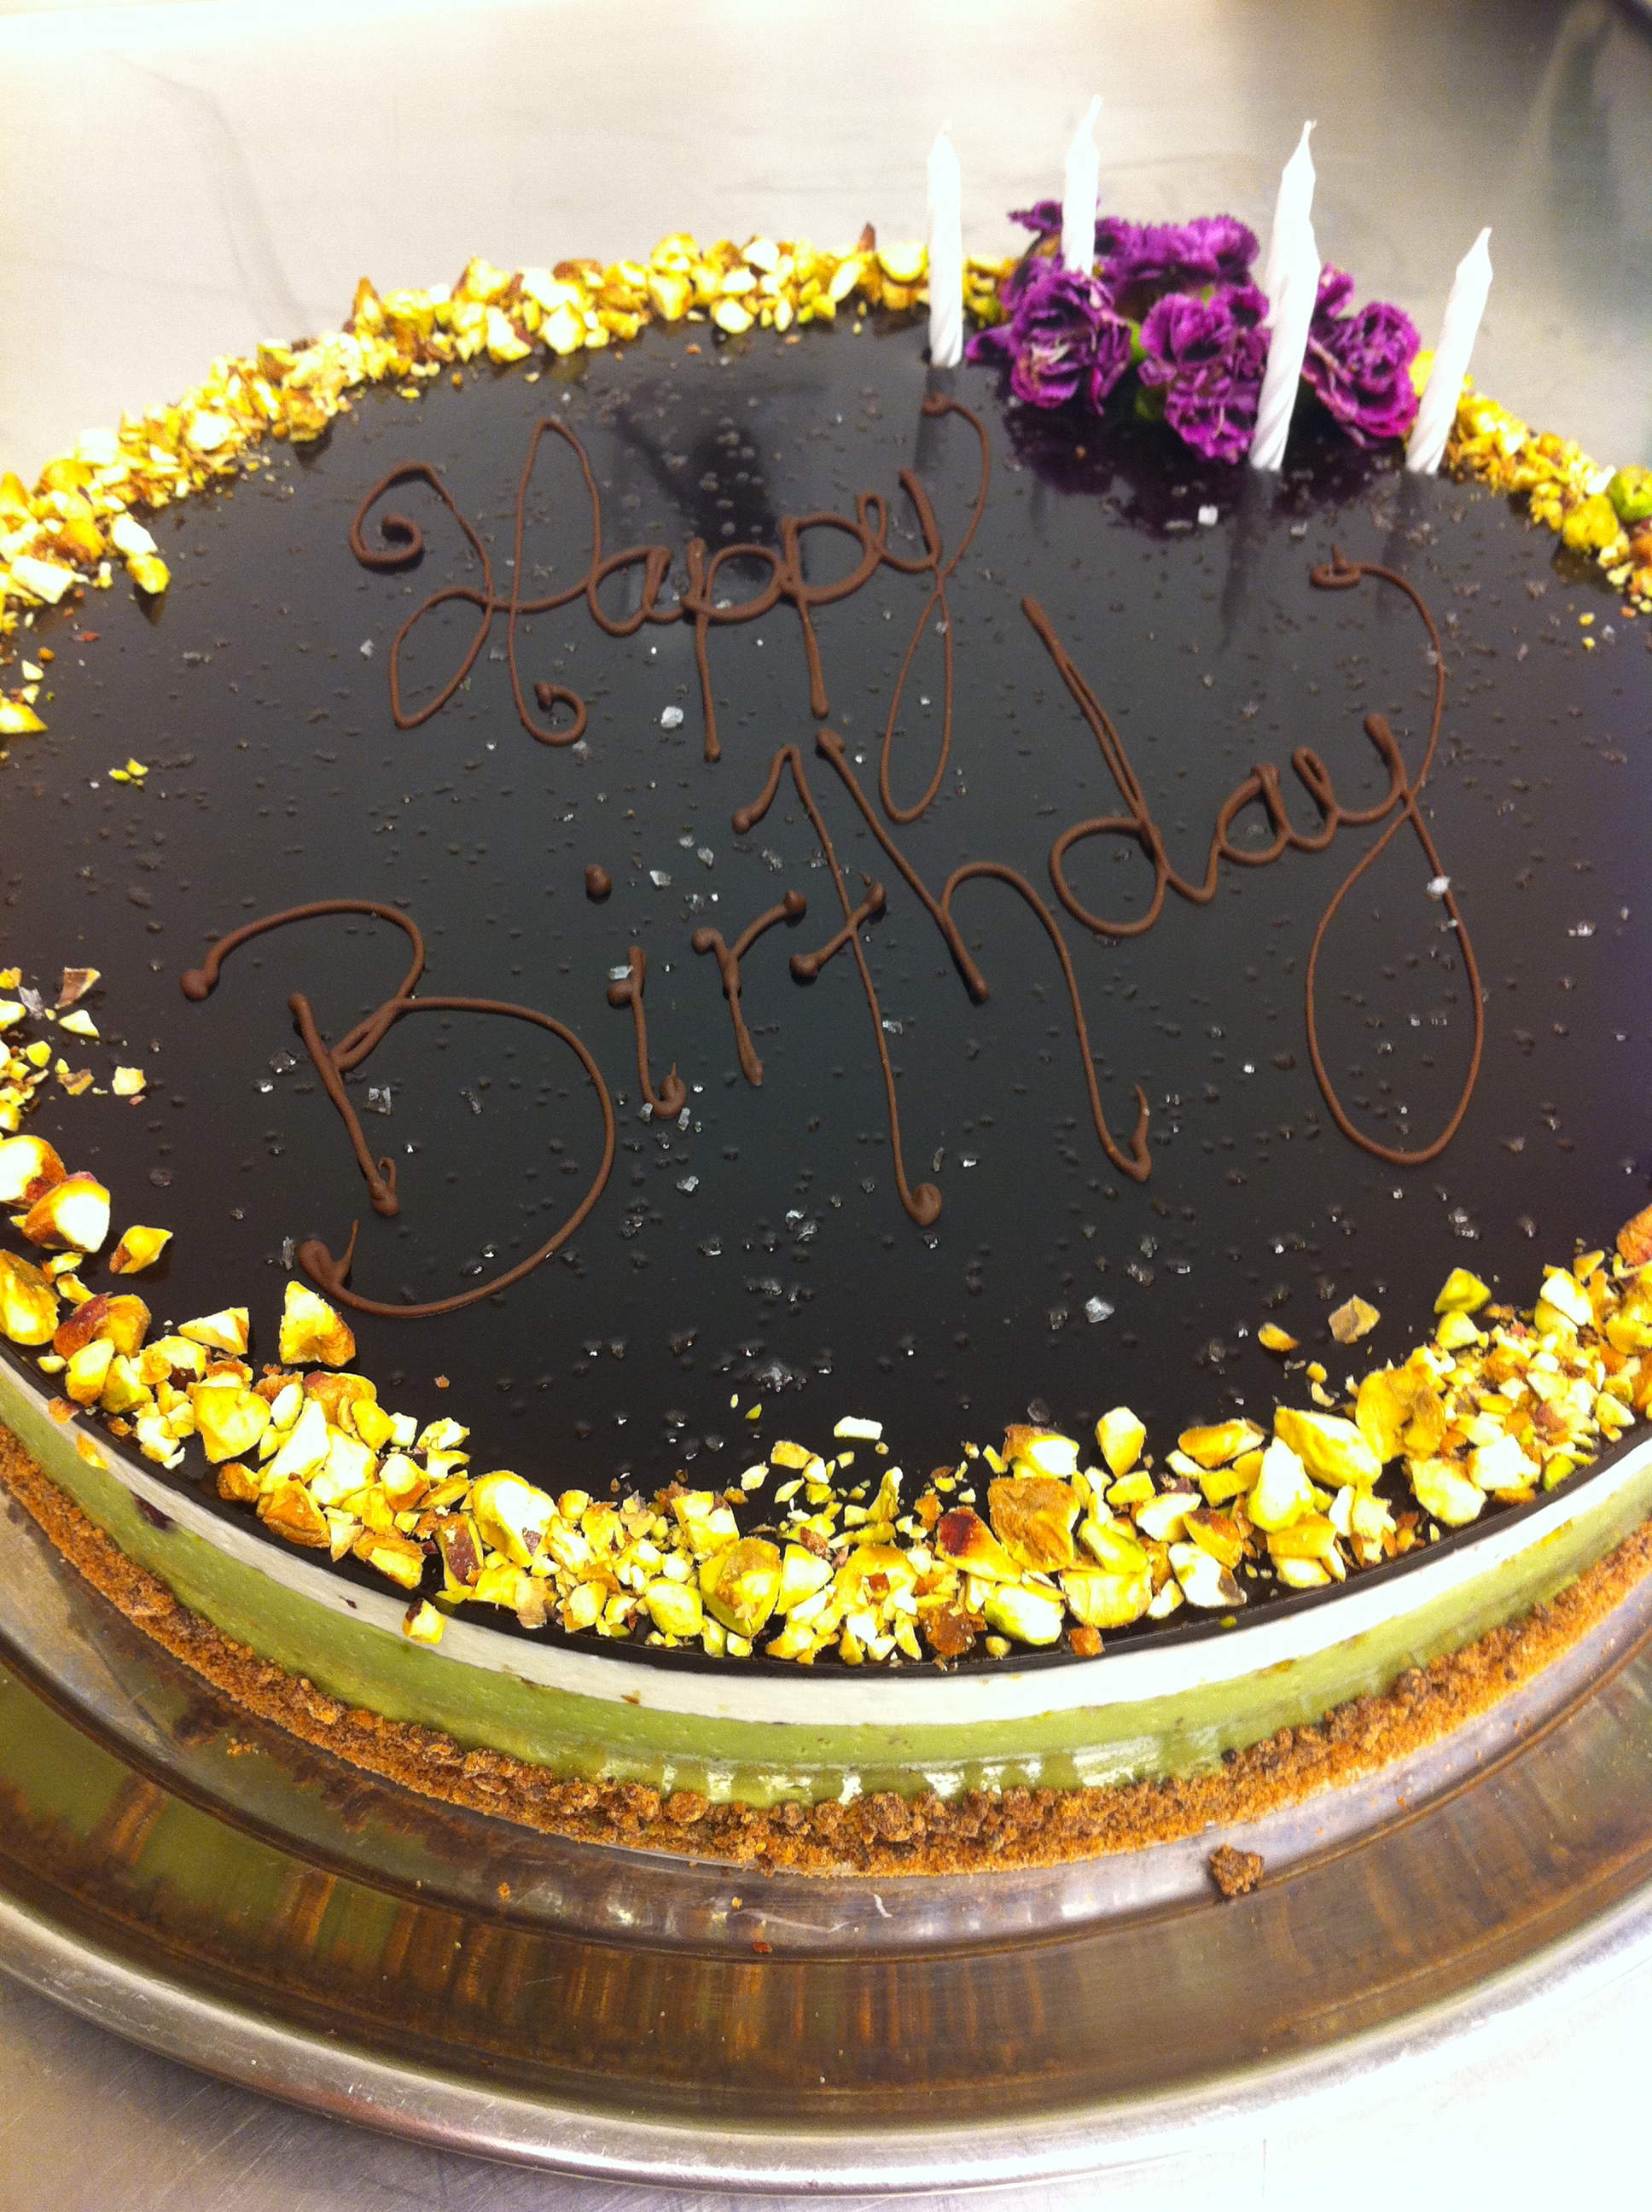 Pistachio and alba truffle birthday cake